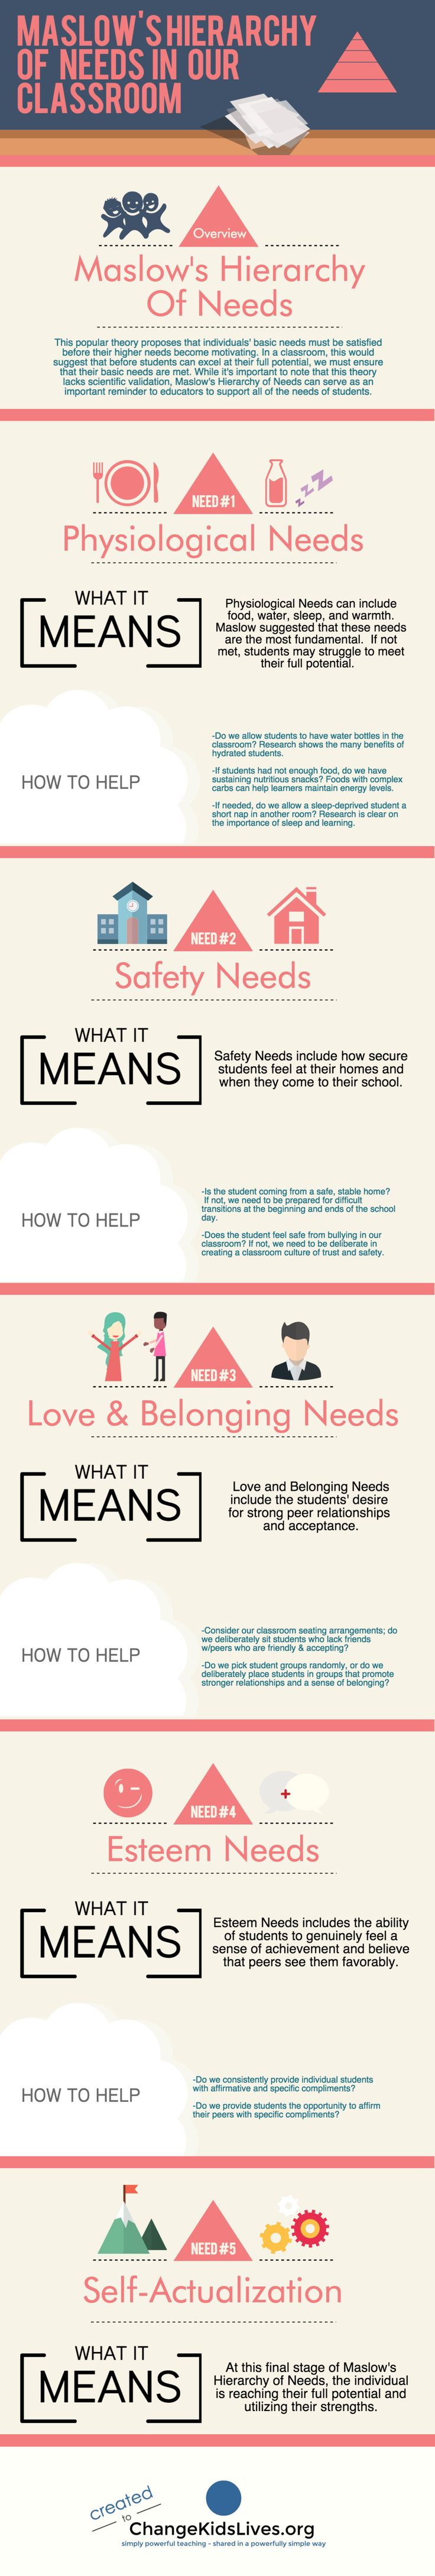 Simple Strategies To Support Maslow's Hierarchy Of Needs In Your Classroom